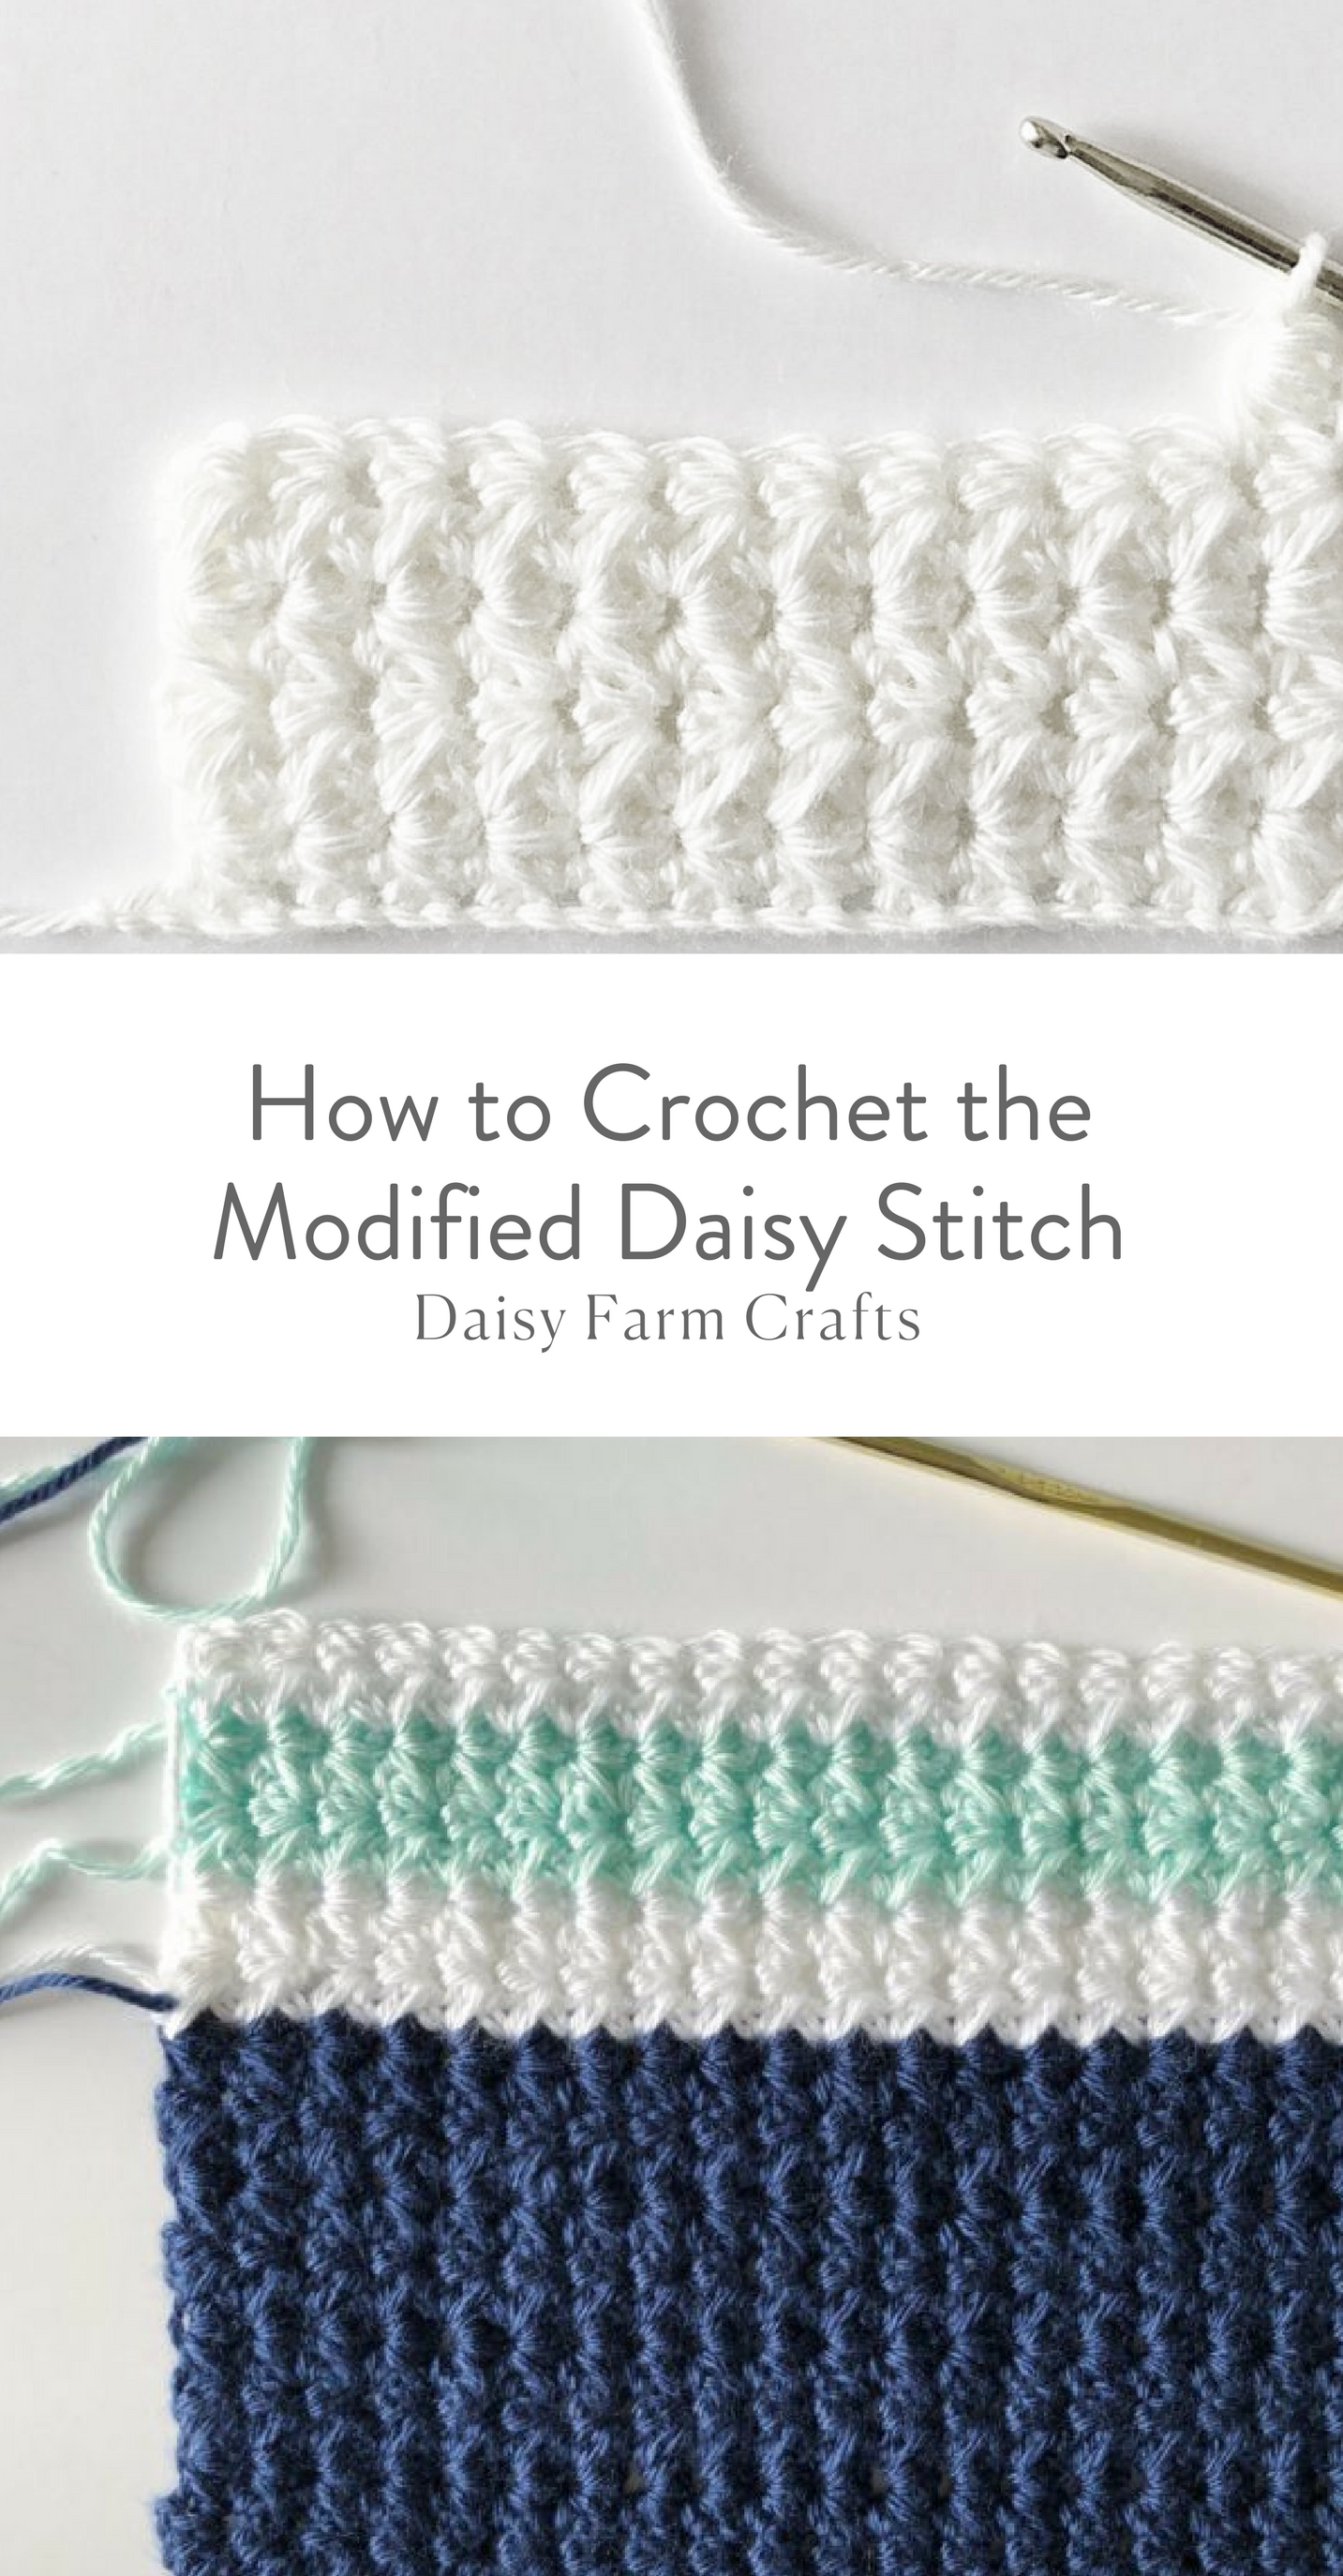 How to Crochet the Modified Daisy Stitch | Daisy Farm Crafts ...